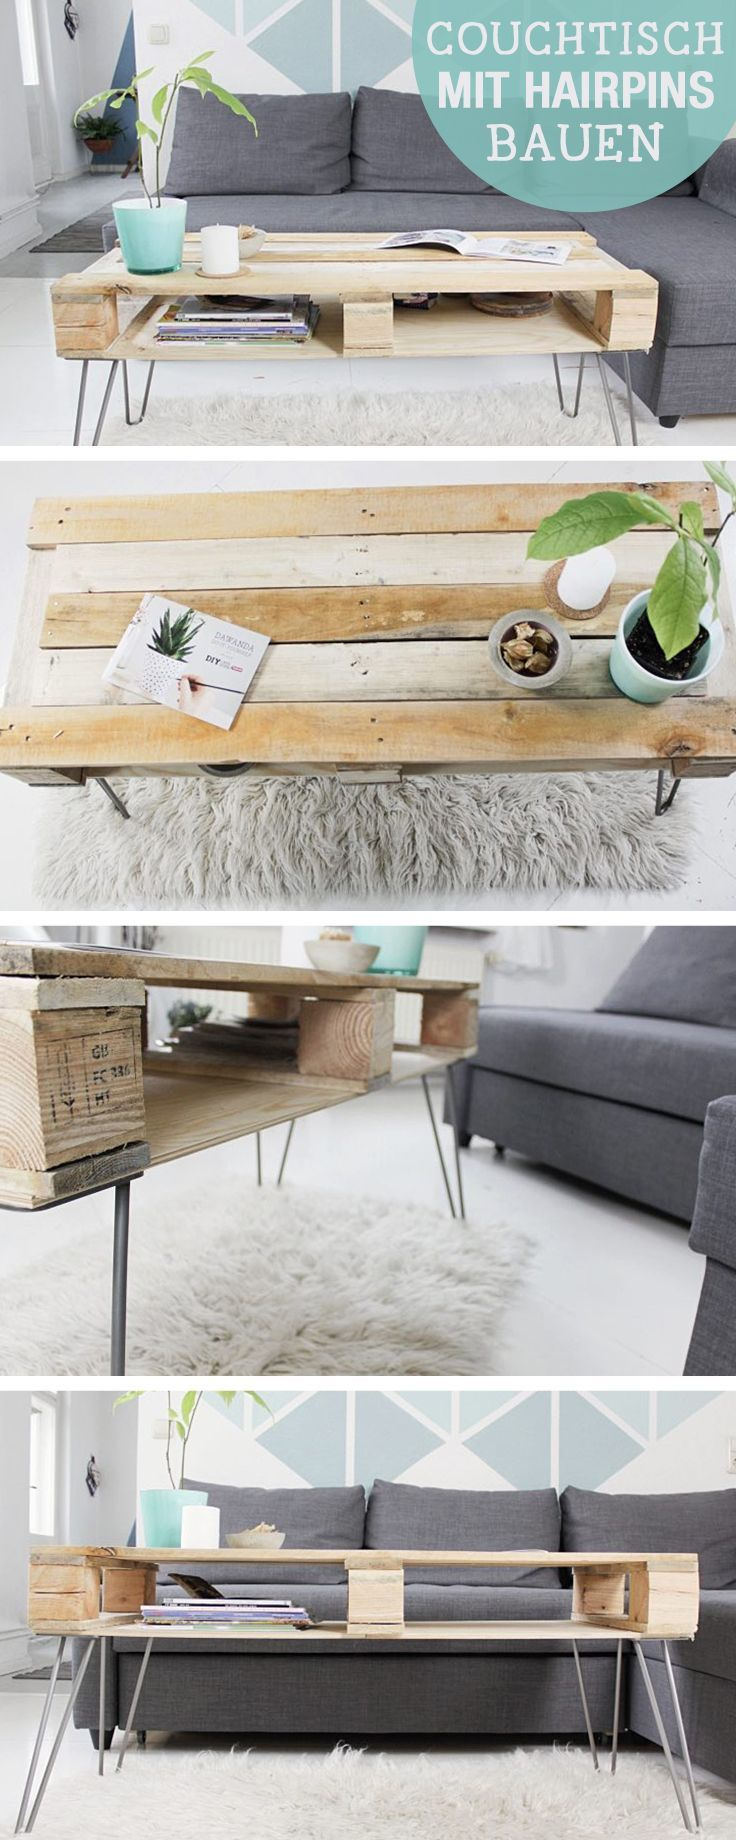 Diy Table Palette Diy Guide For A Pallet Coffee Table With Hairpin Legs Furniture